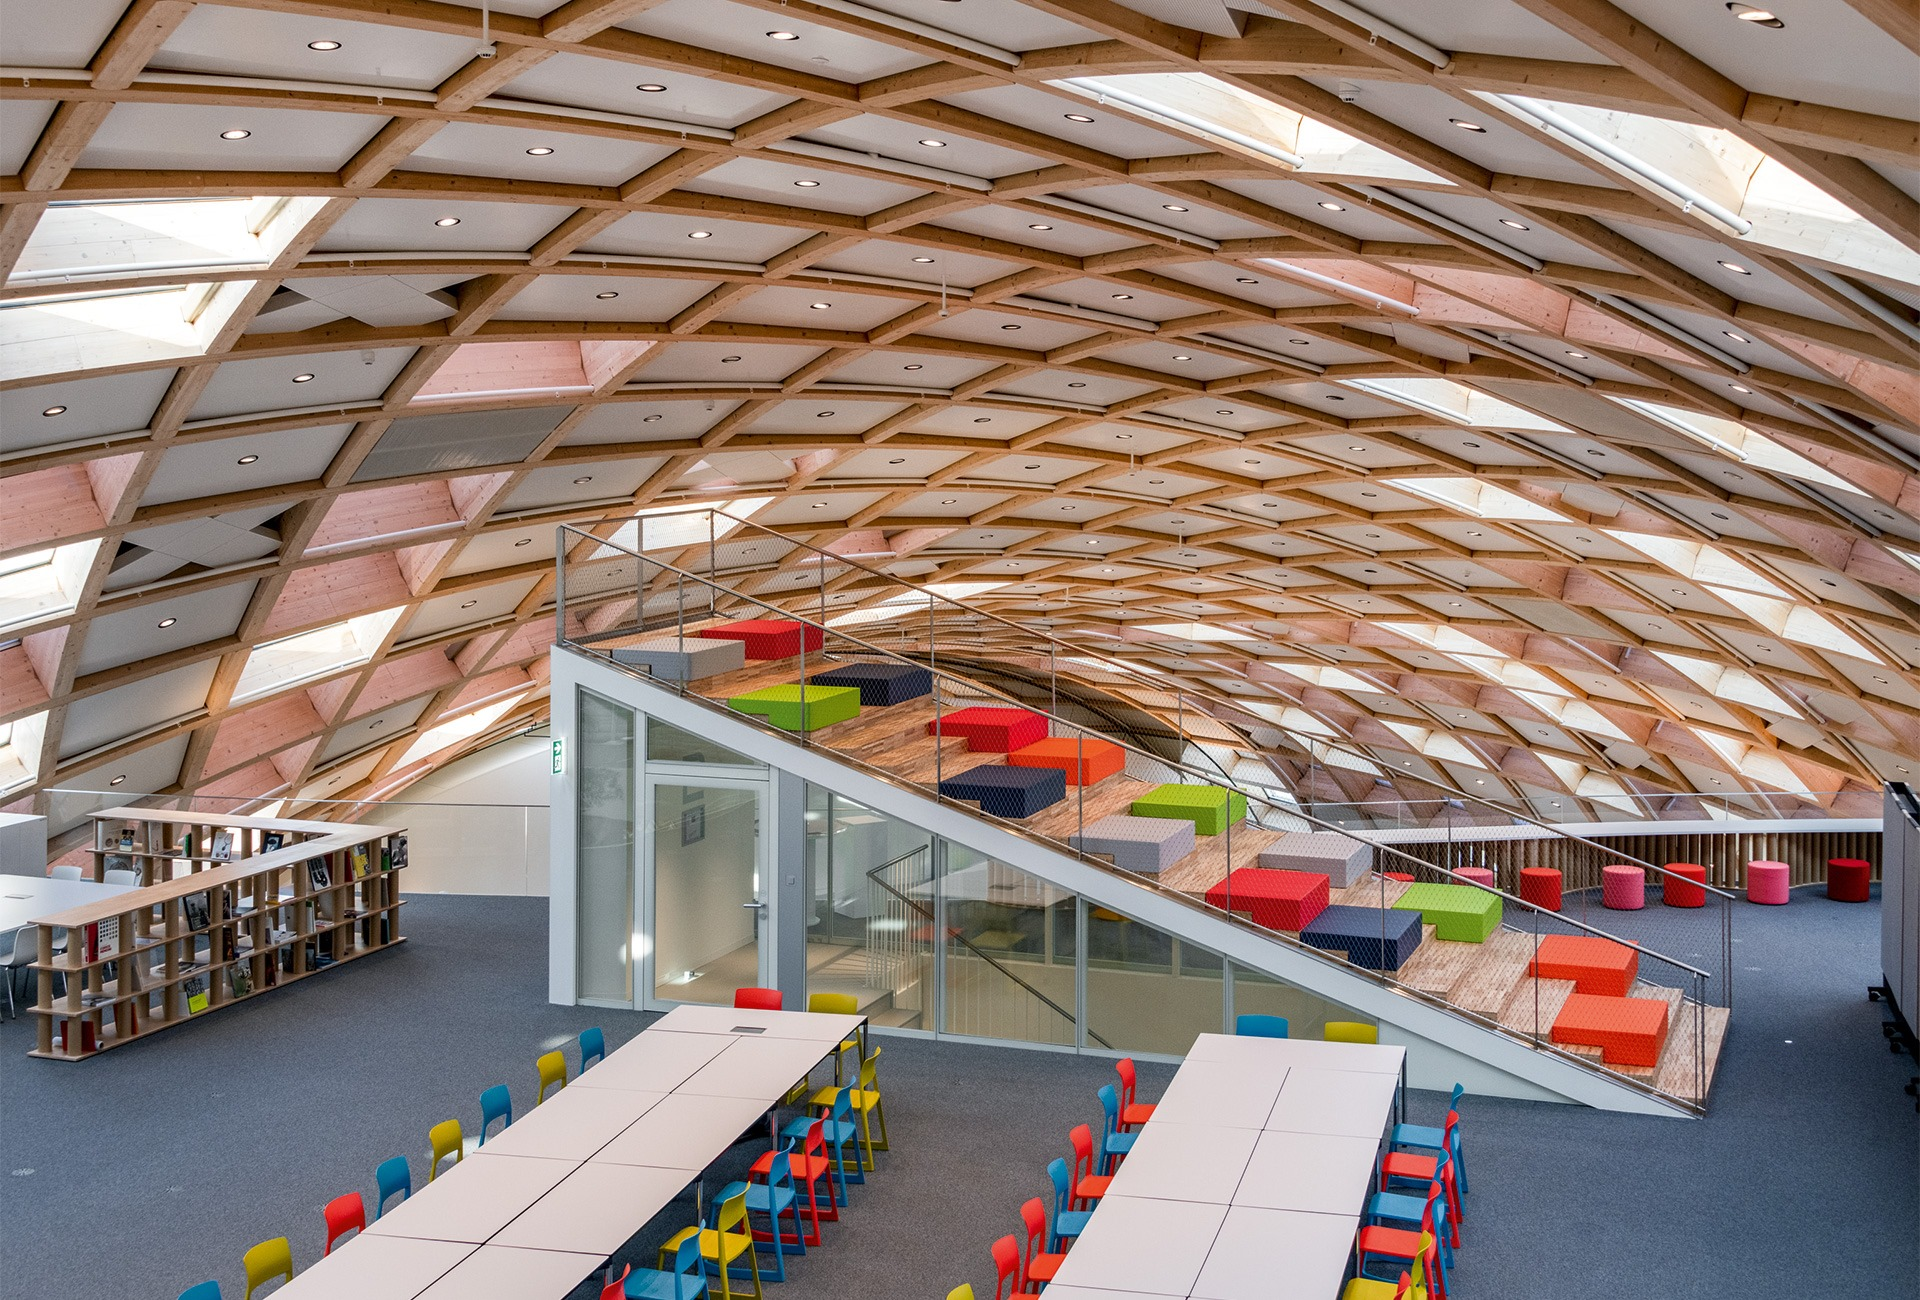 Swatch New Headquarters Biel Shigeru Ban